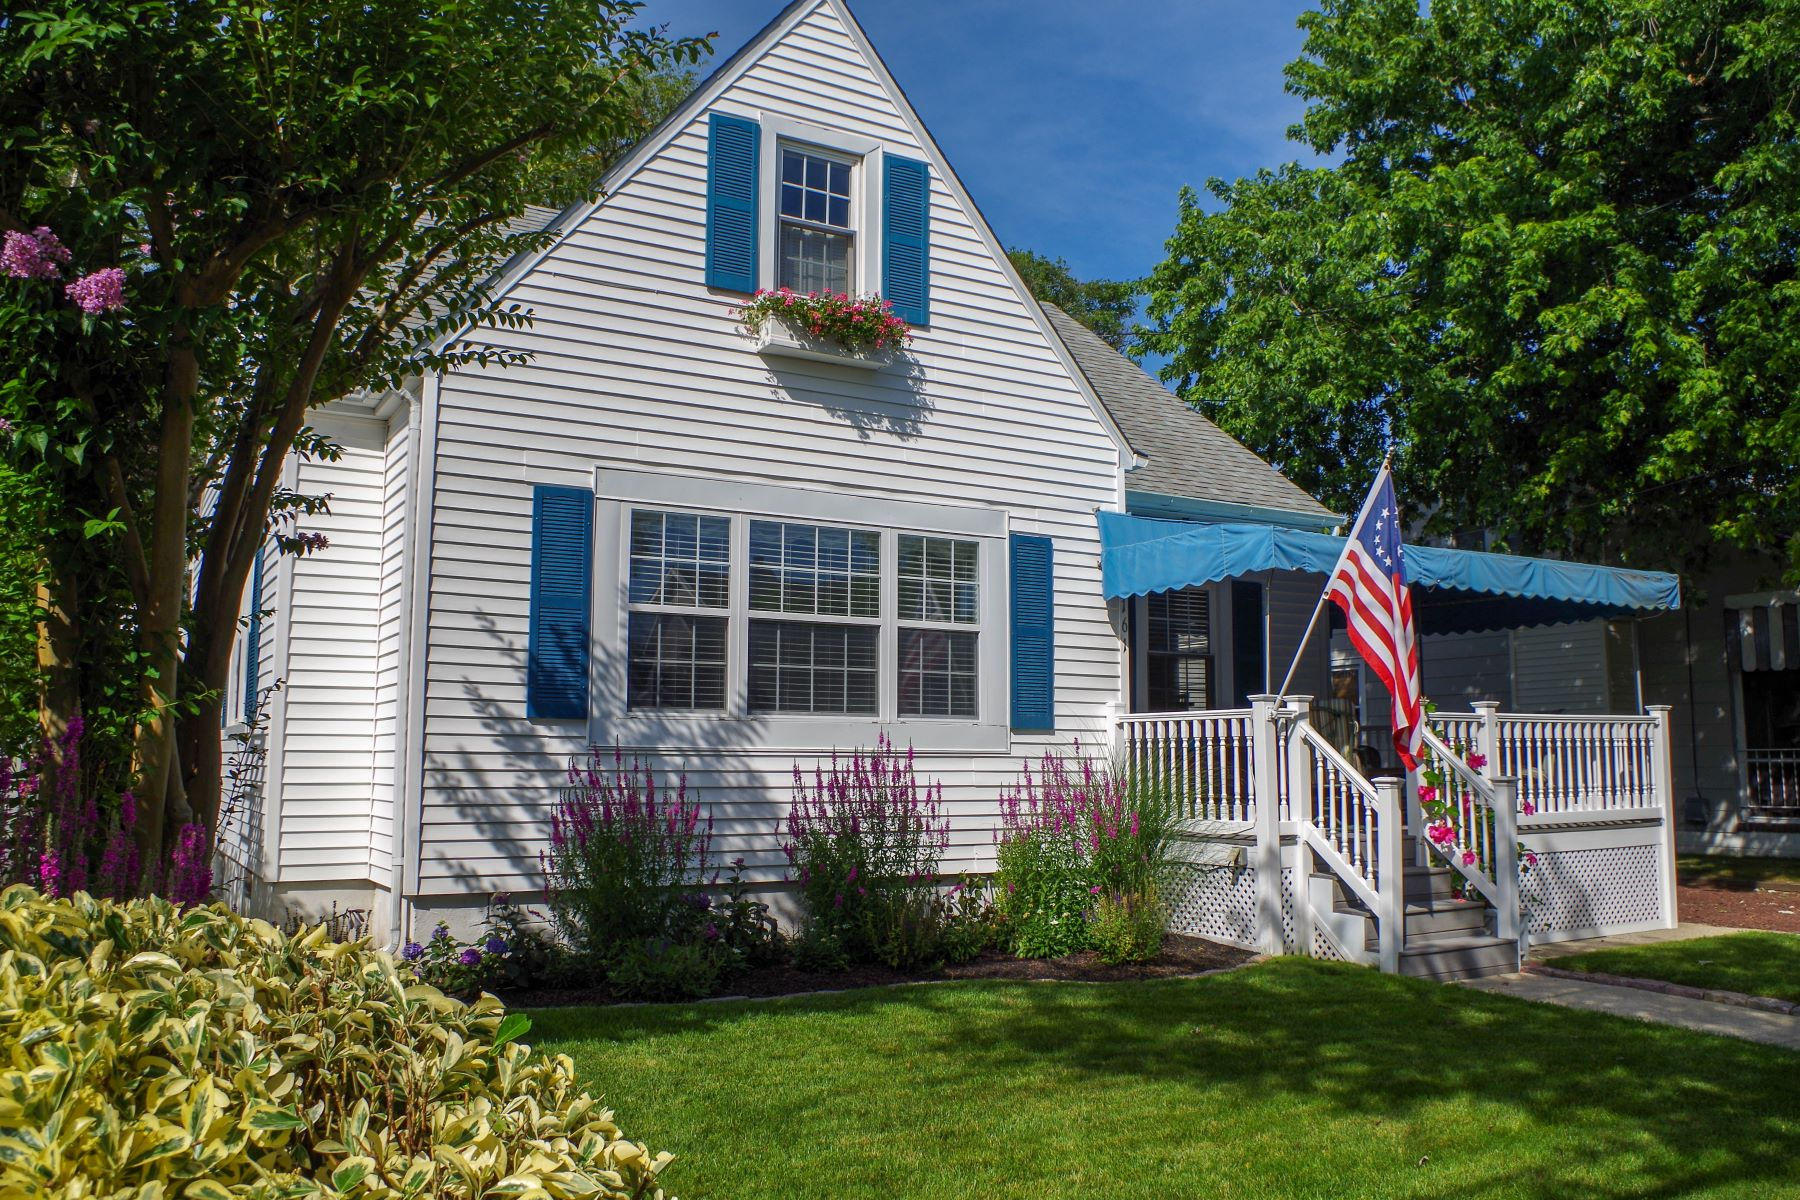 Single Family Home for Sale at Timeless Cape Cod Beach Home 161 22nd Street, Avalon, New Jersey 08202 United States